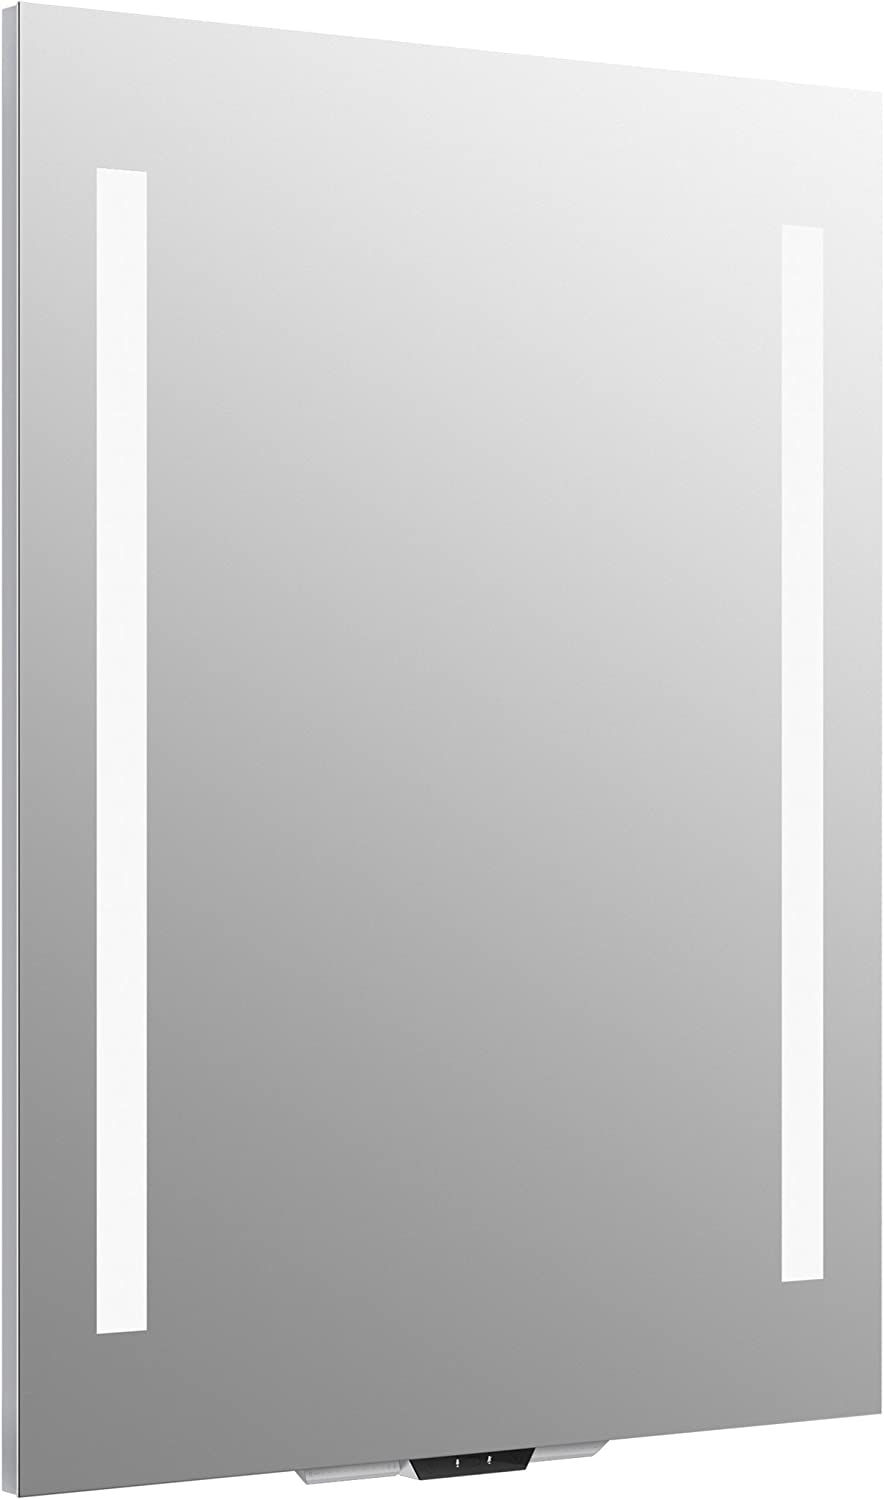 "Vanity Mirror with Lights by KOHLER, Bathroom Vanity Mirror with Amazon Alexa, Verdera Voice Collection, 24"" Wide By 33"" High, K-99571-VLAN-NA"